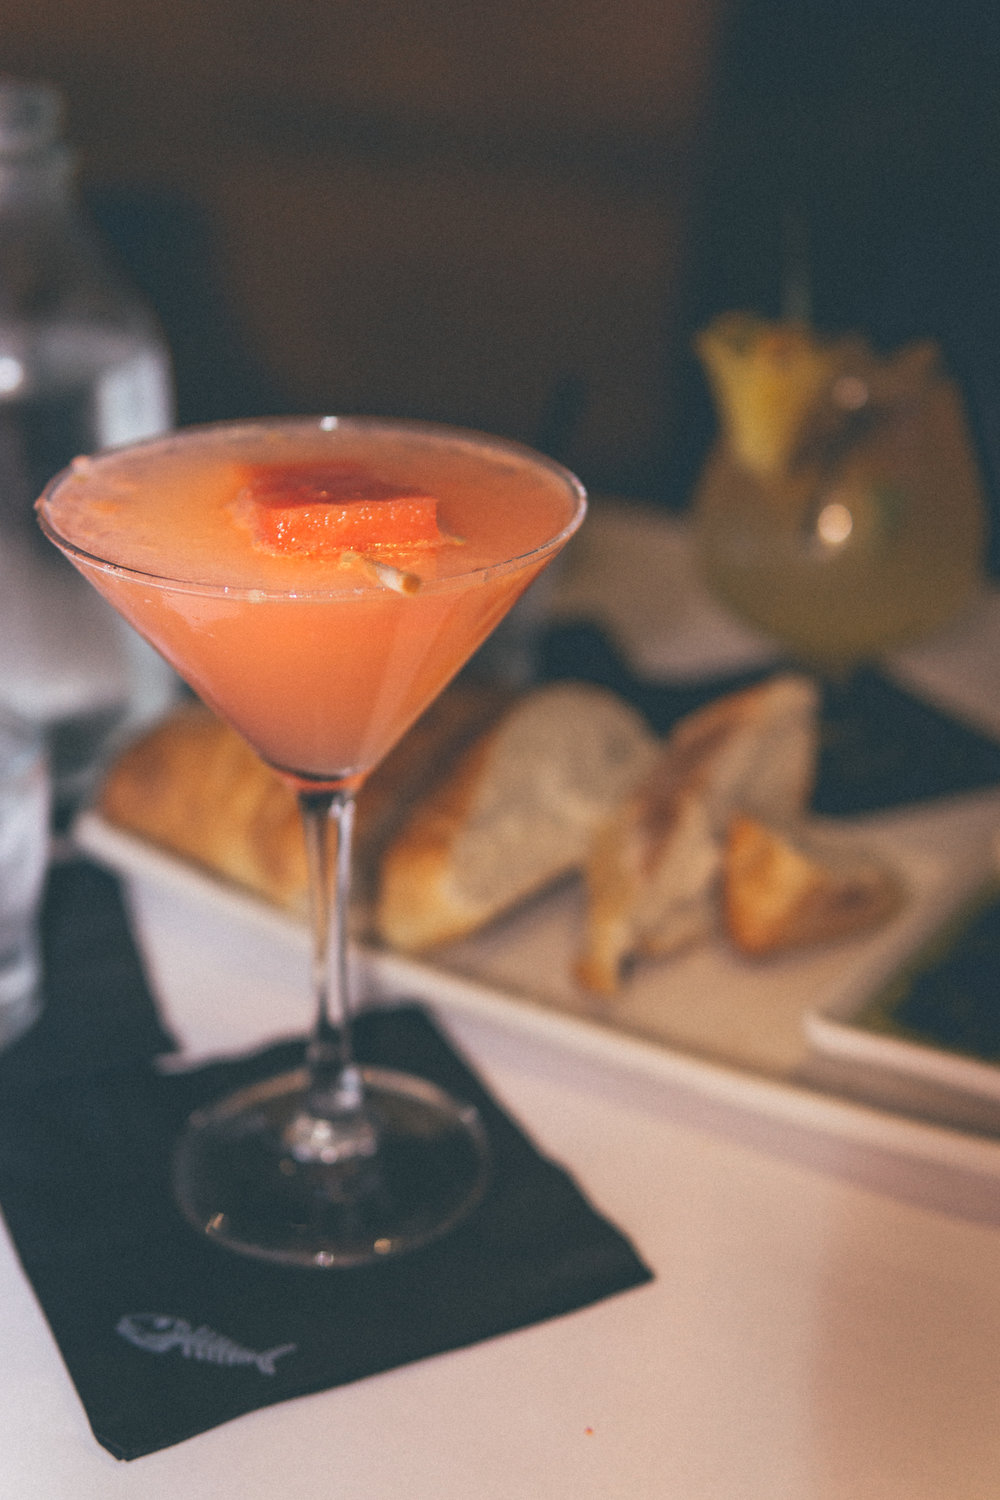 Fresh Watermelon Martini: Hand-muddled watermelon, house-infused English cucumber vodka & fresh sour.